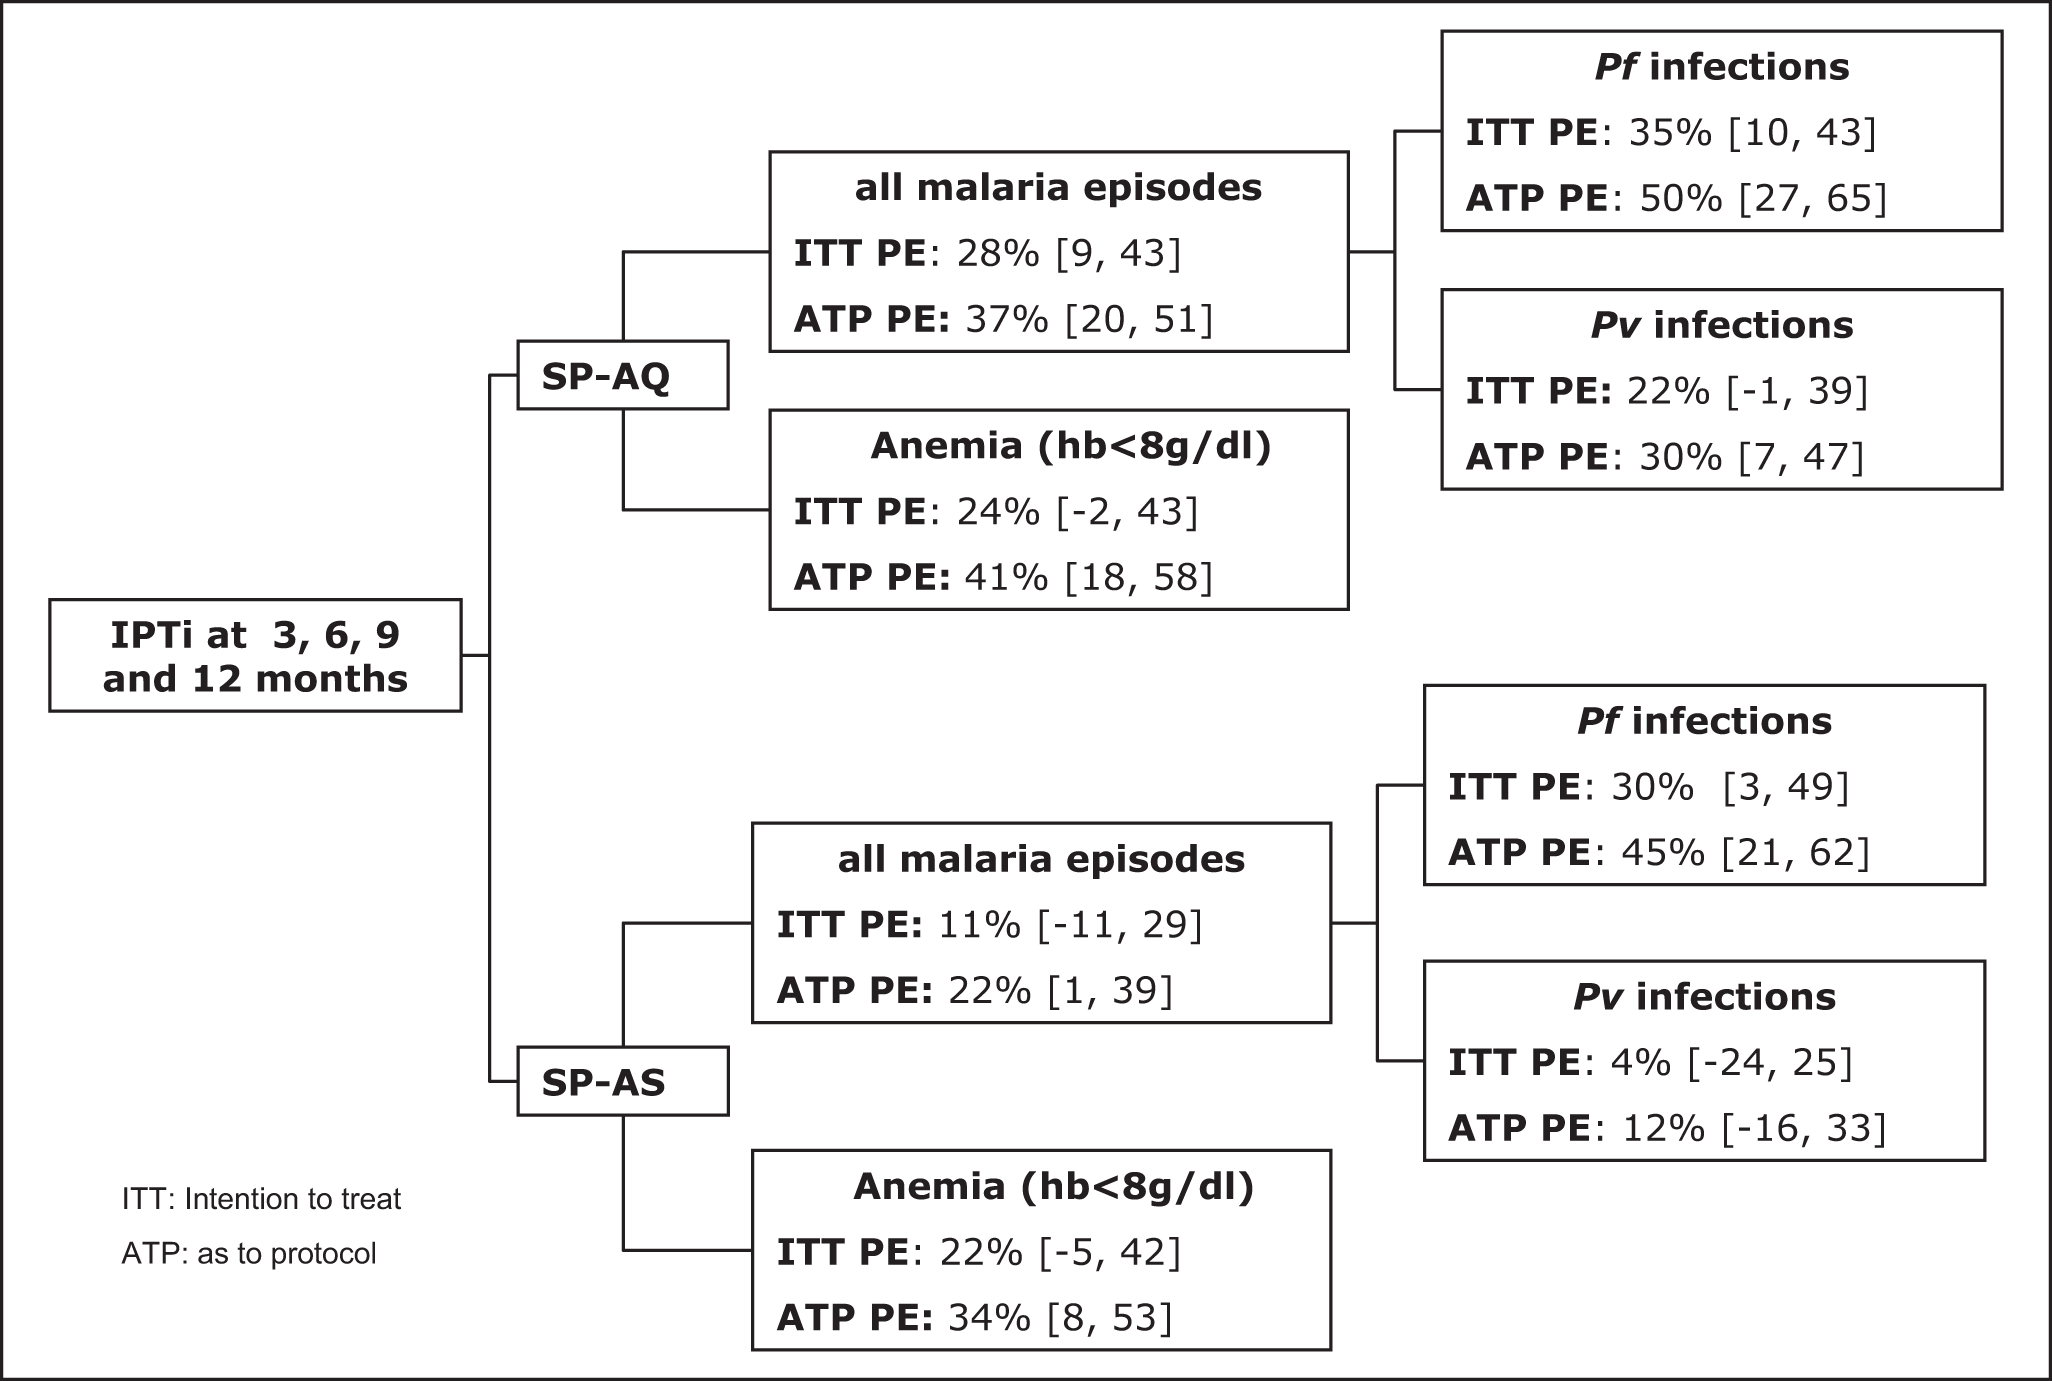 Summary of IPTi preventive efficacy against malaria at 15 mo of age adjusted for sex, place of residence, season of enrollment, and average insecticide-treated net use.